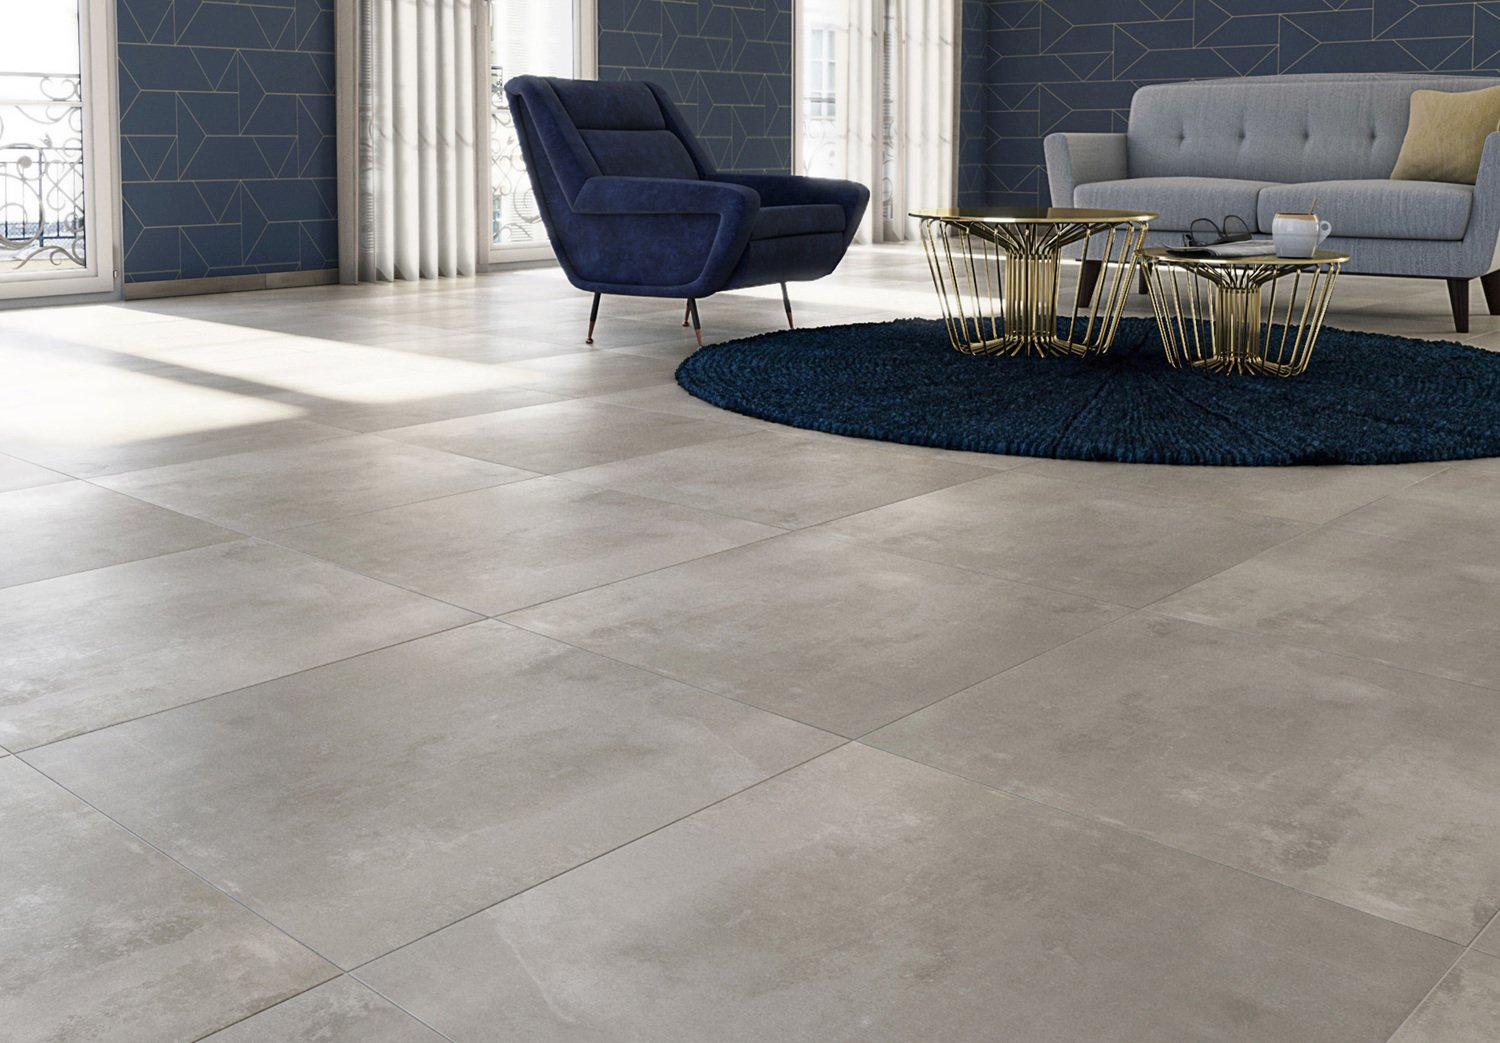 Carrelage Grand Format La Grande Tendance Travauxcom